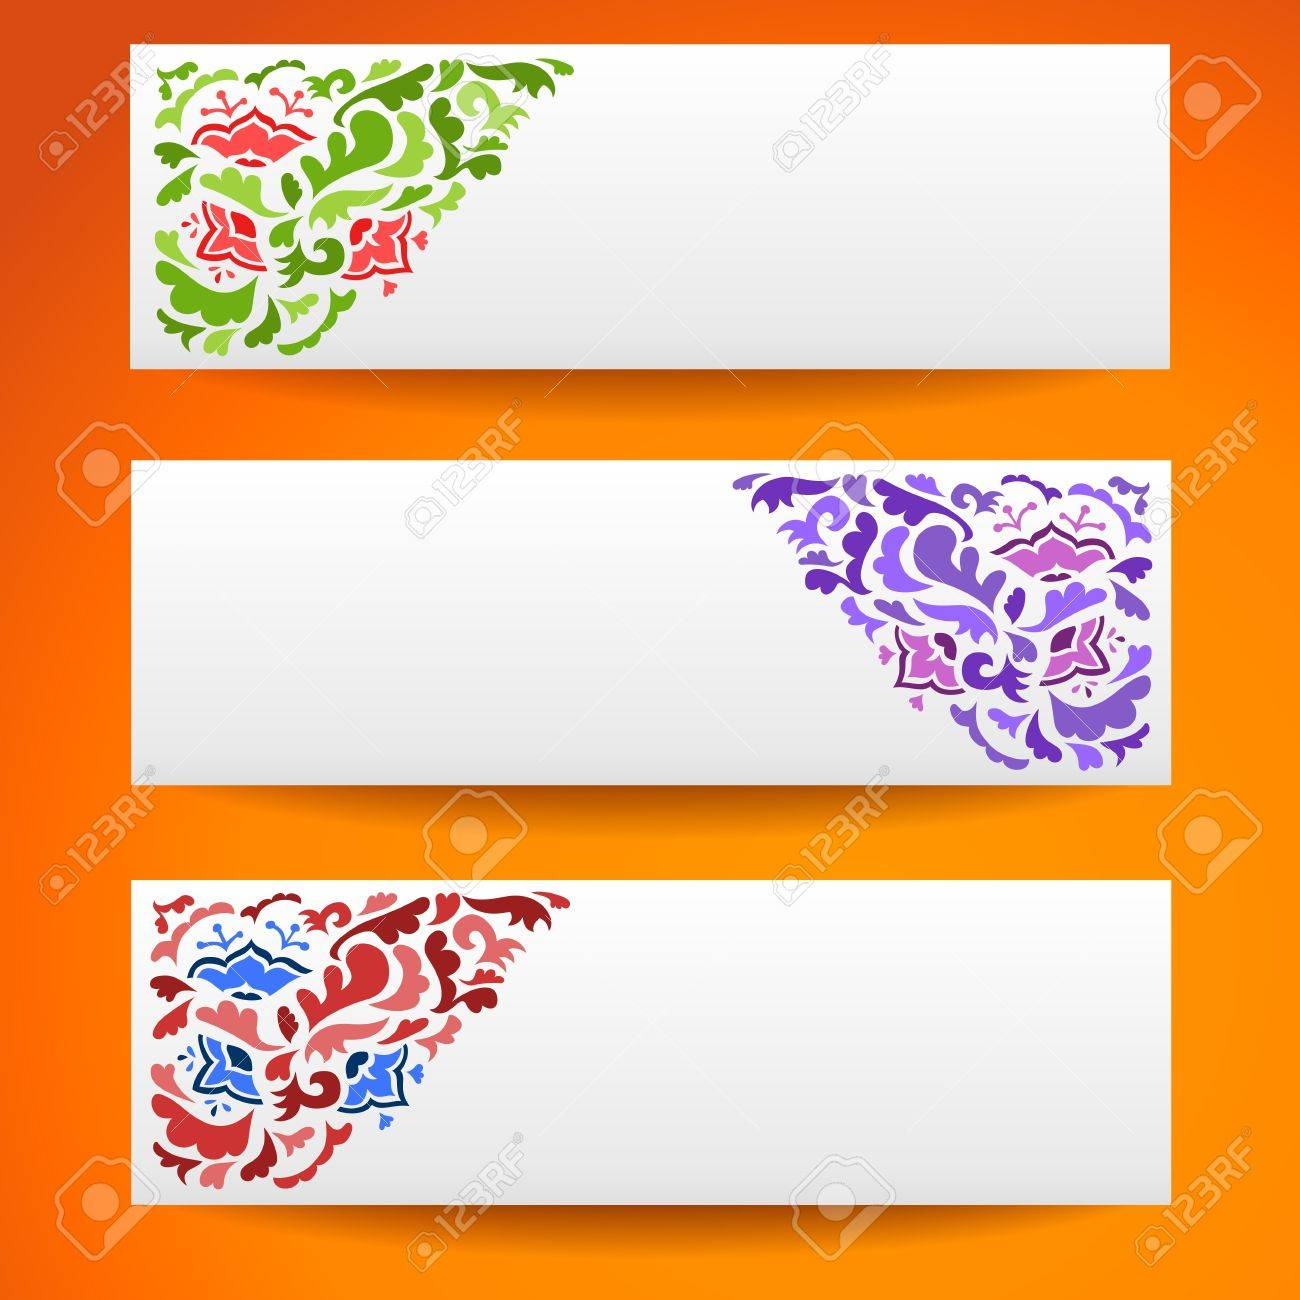 Abstract Flower Ornamental Horizontal Banners Illustration For ...